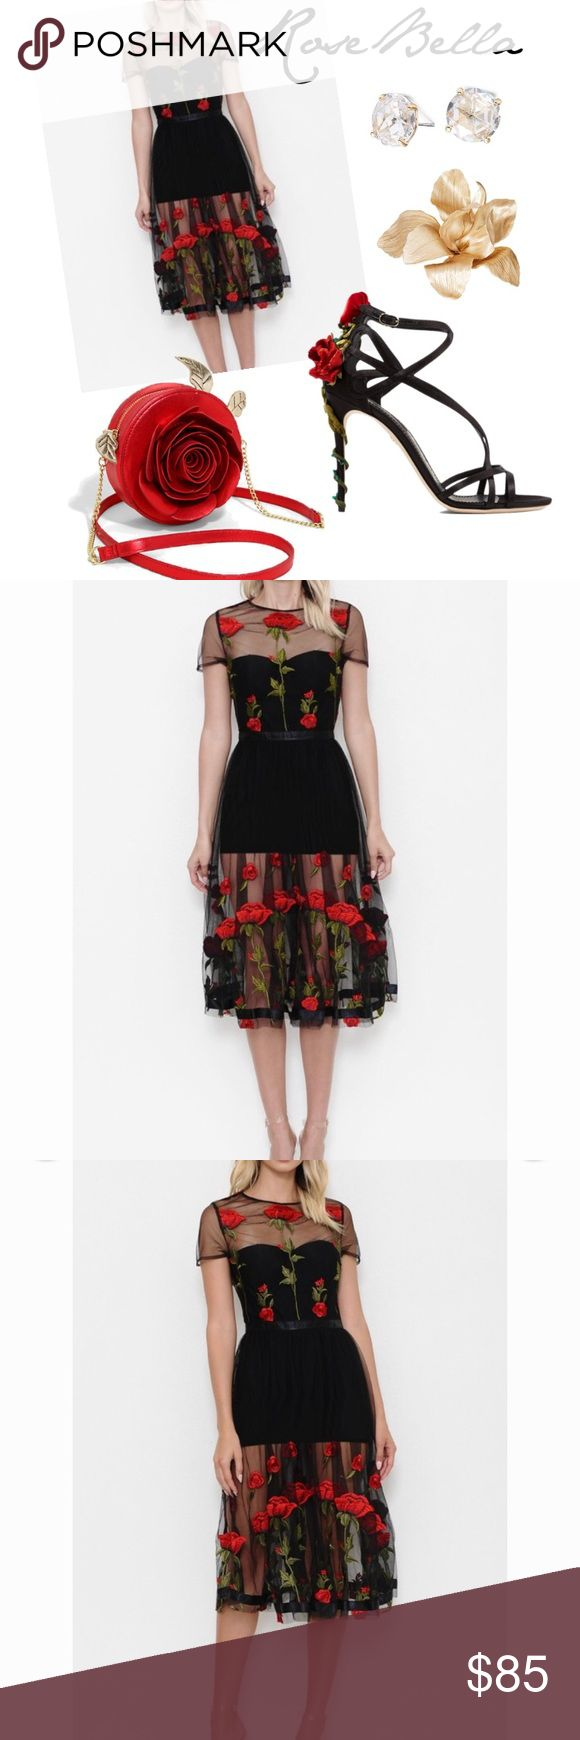 Rosa Bella Dress Midi dress with floral embroidered sheer Dresses Midi